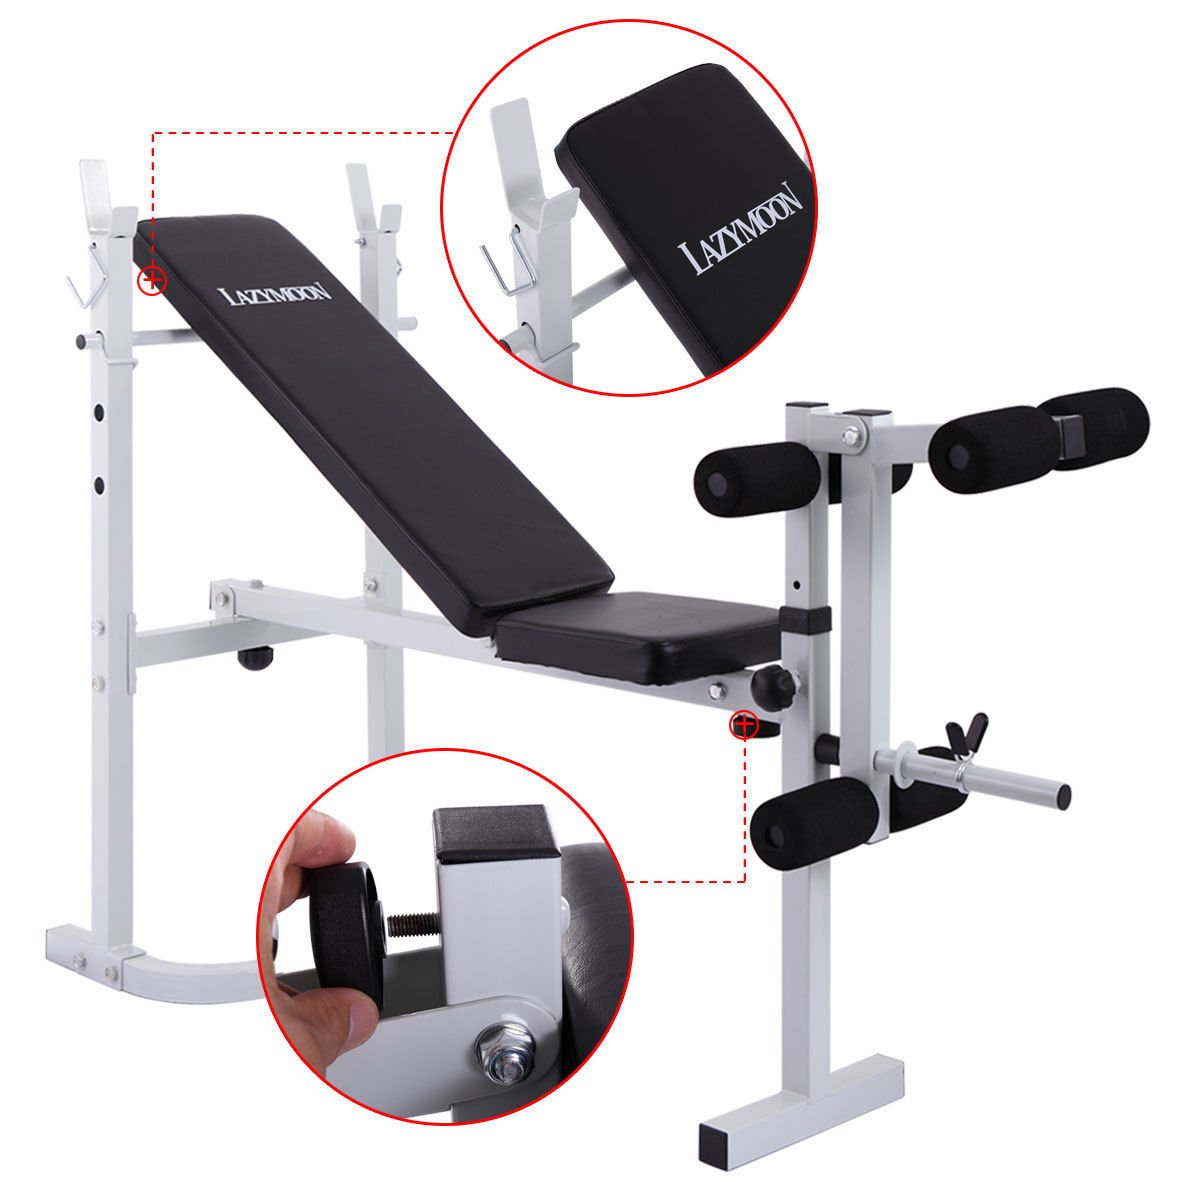 JAXPETY Adjustable Weight Bench Barbell Incline Flat Lifting Workout Body Press Home Gym